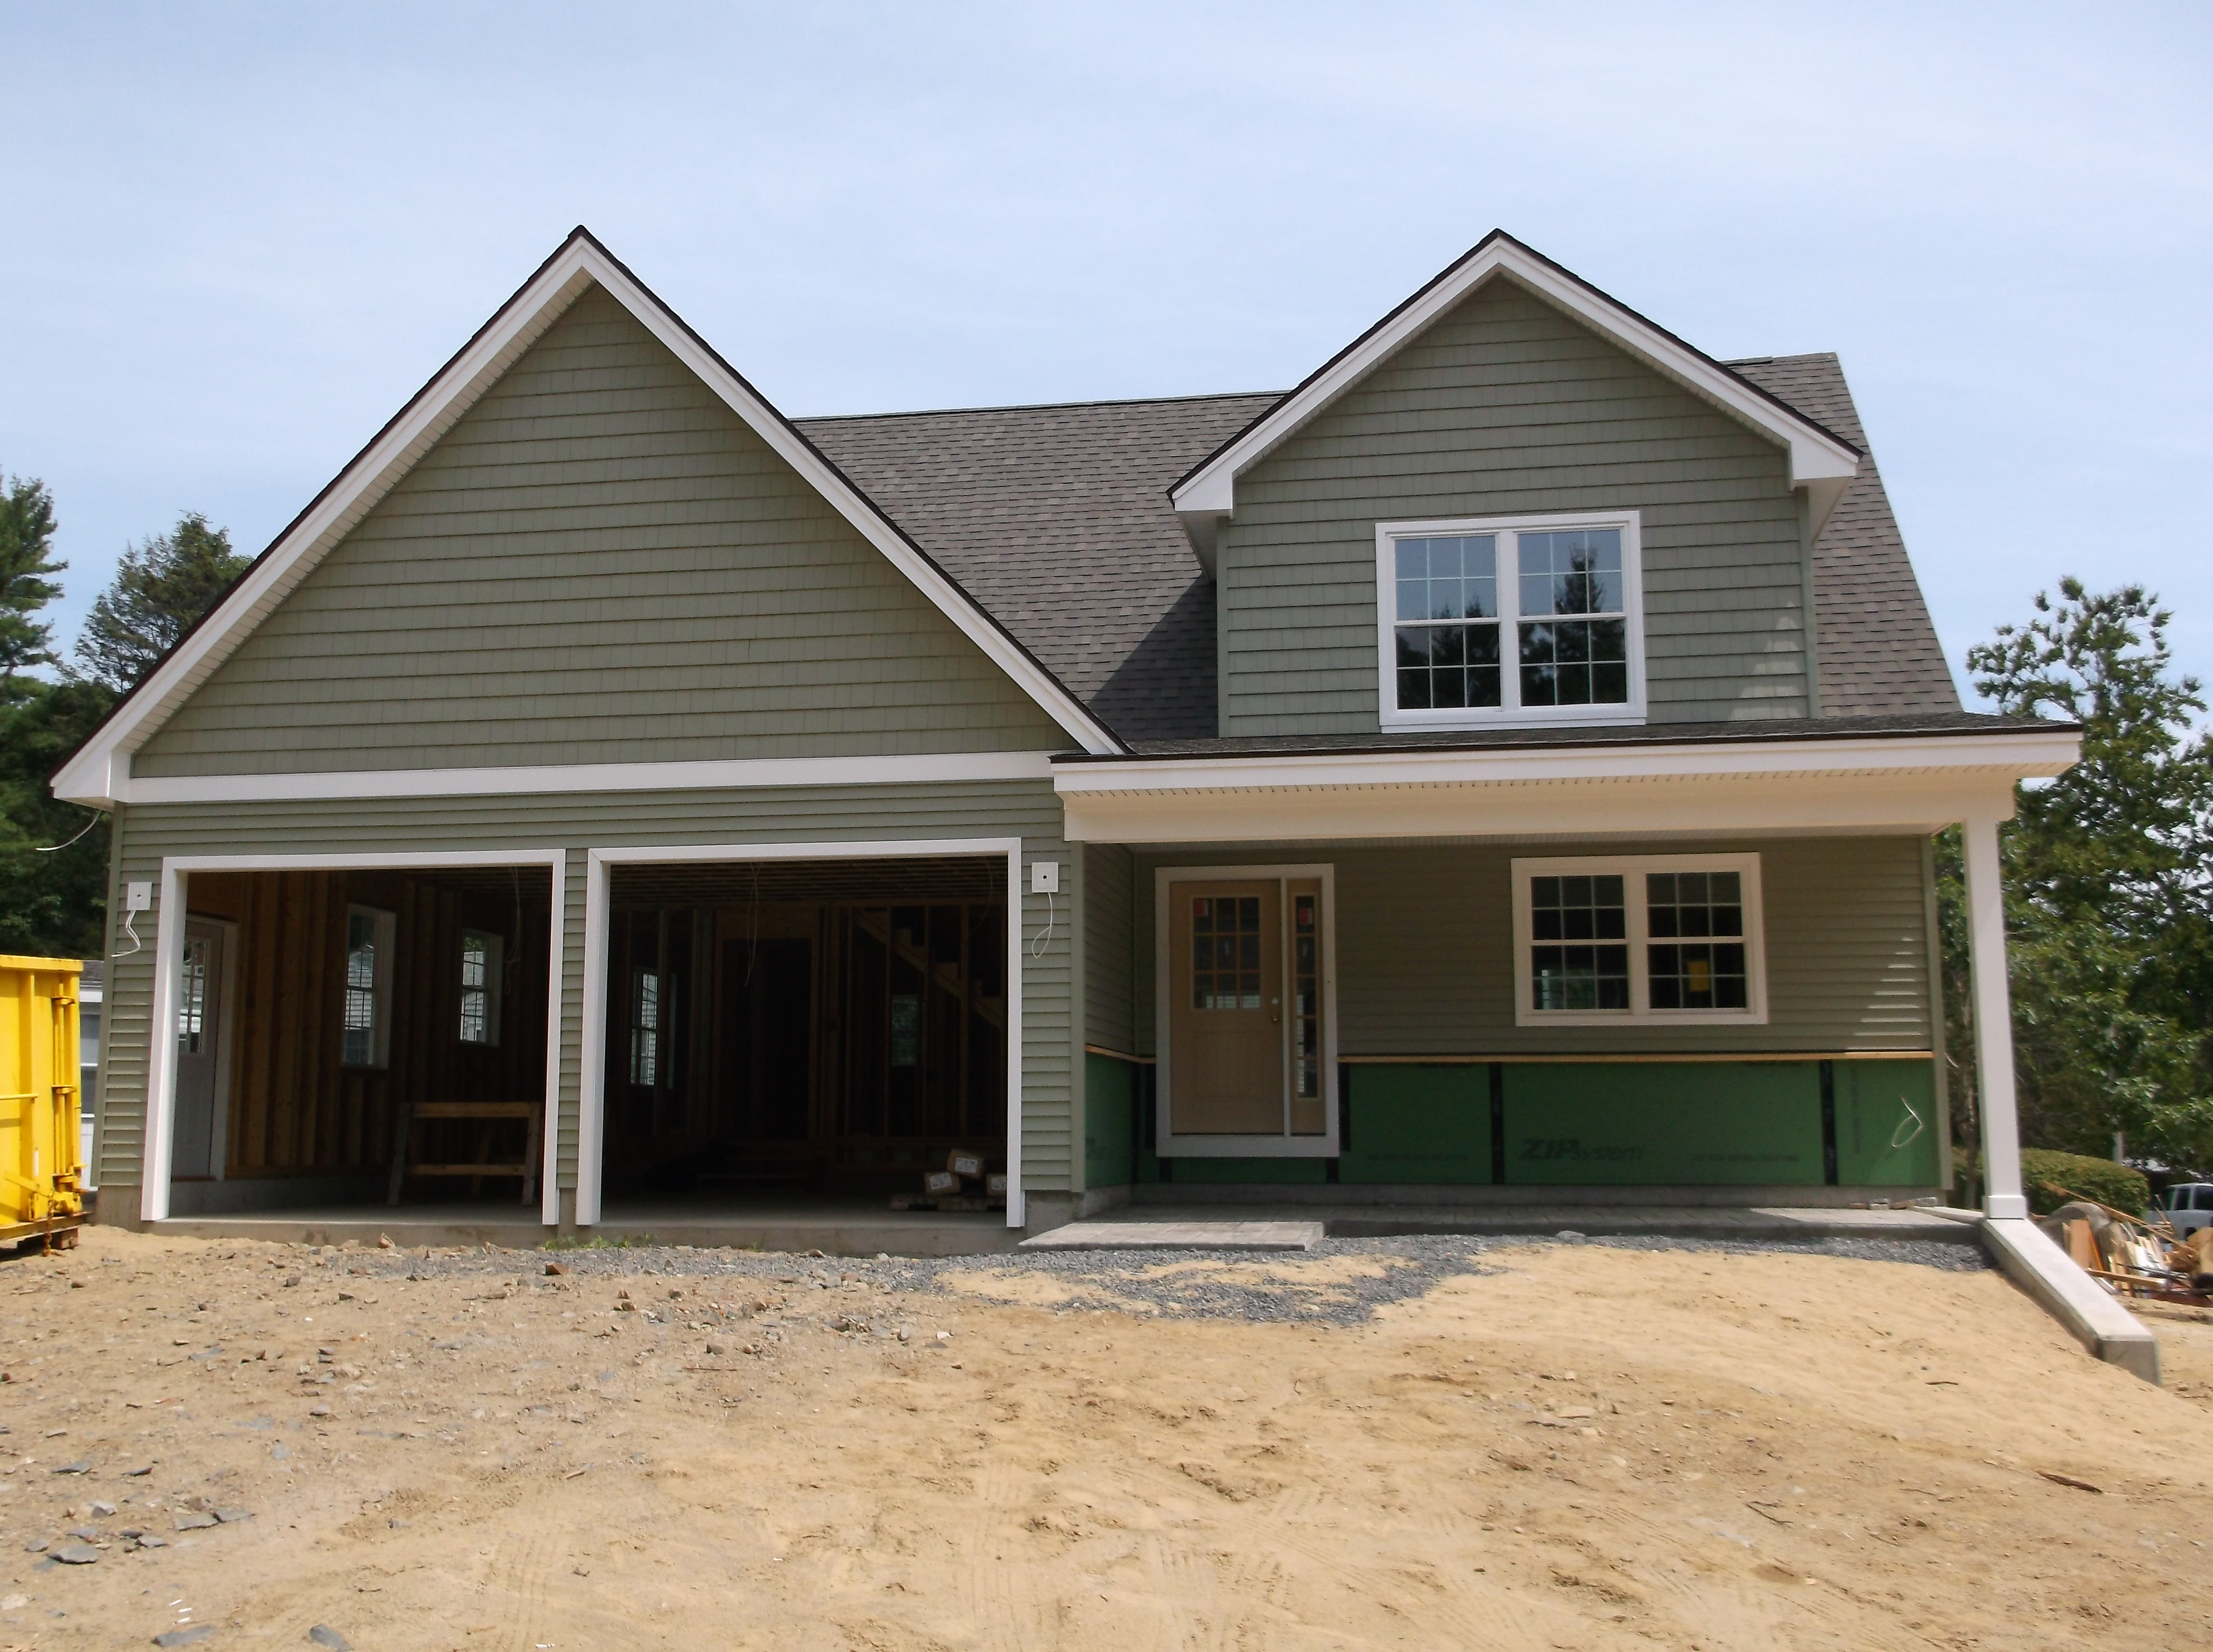 New hampshire and maine home builder 17 rcc building for Home builders in new hampshire